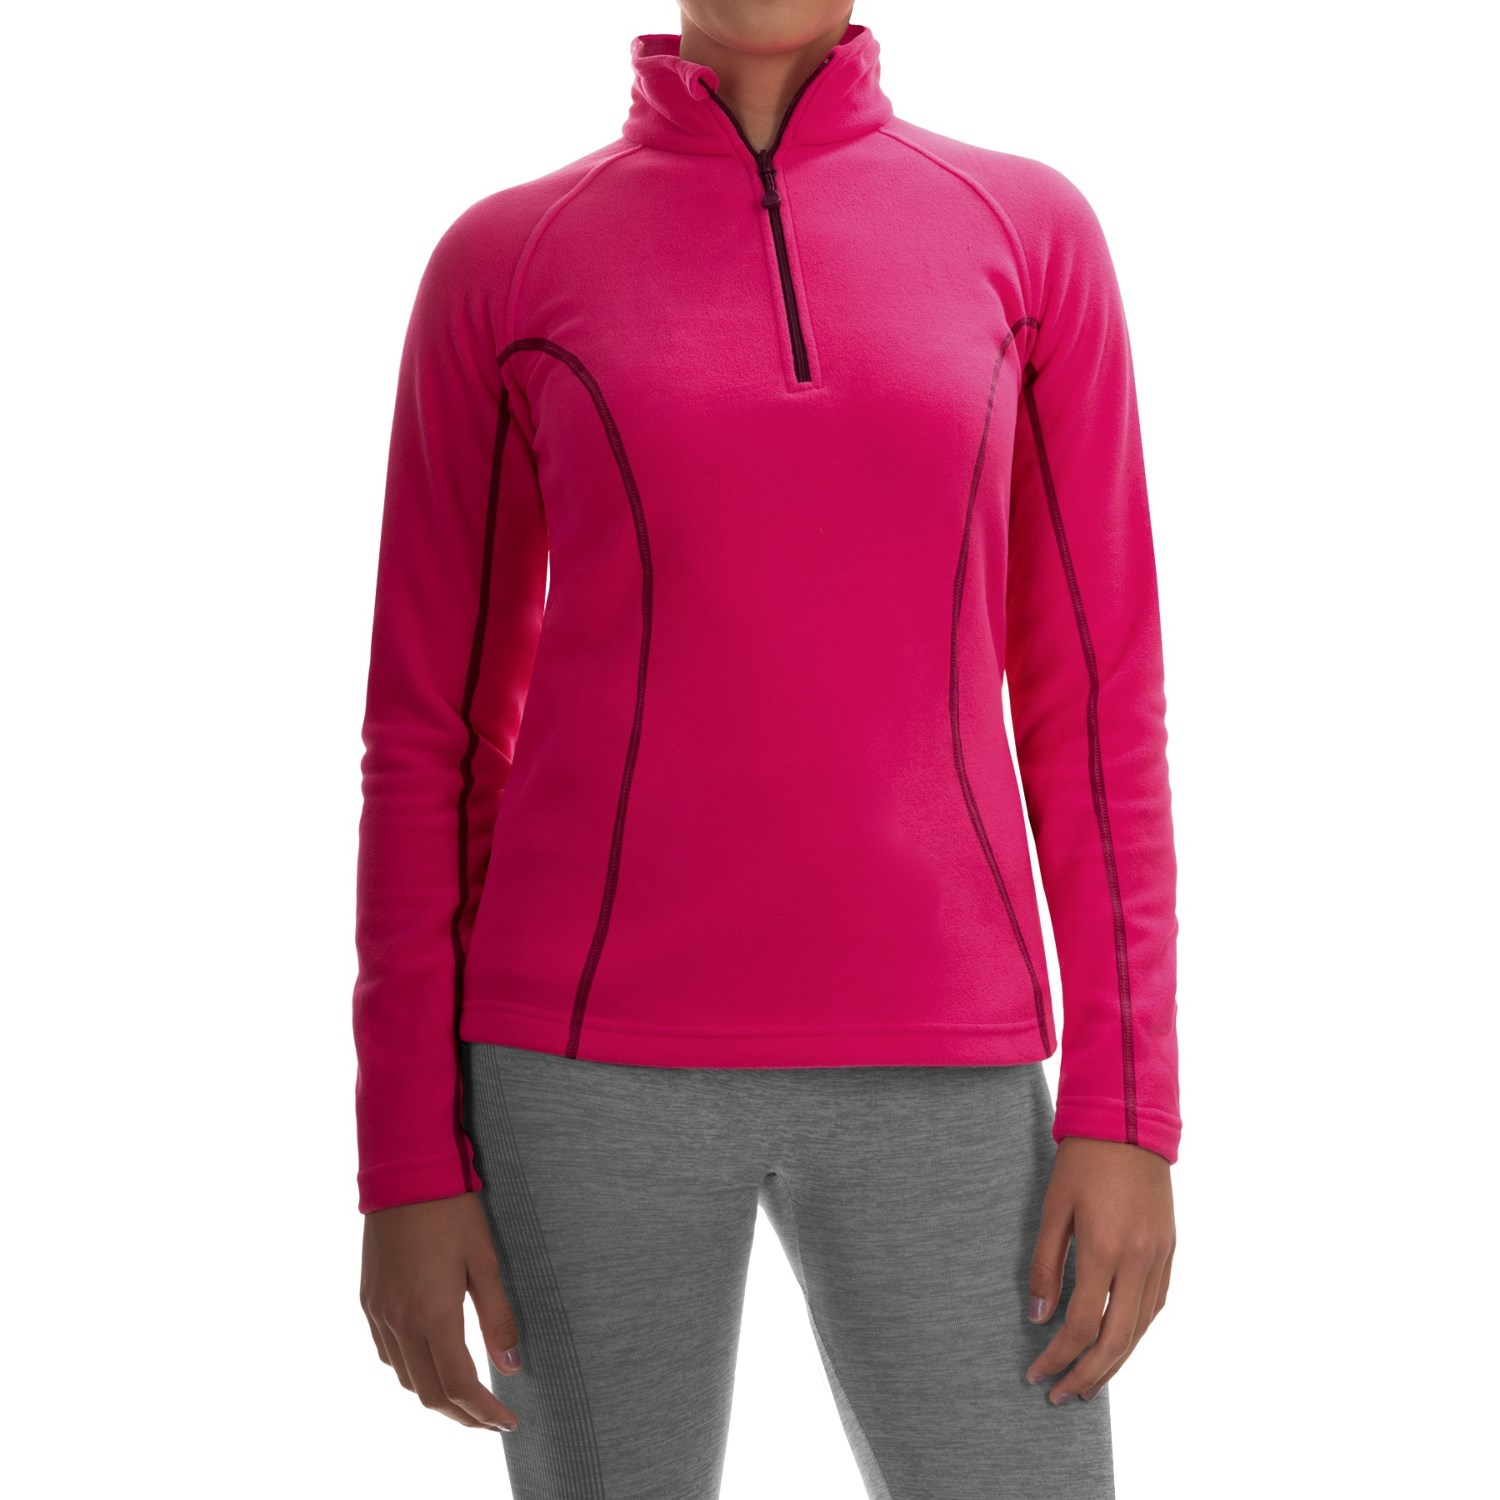 Get set for colder weather with the comfy designs of a women's pullover from Old Navy. Sport a fun layered look with sweater pullovers for women in a variety of fashionable colors and cozy materials.